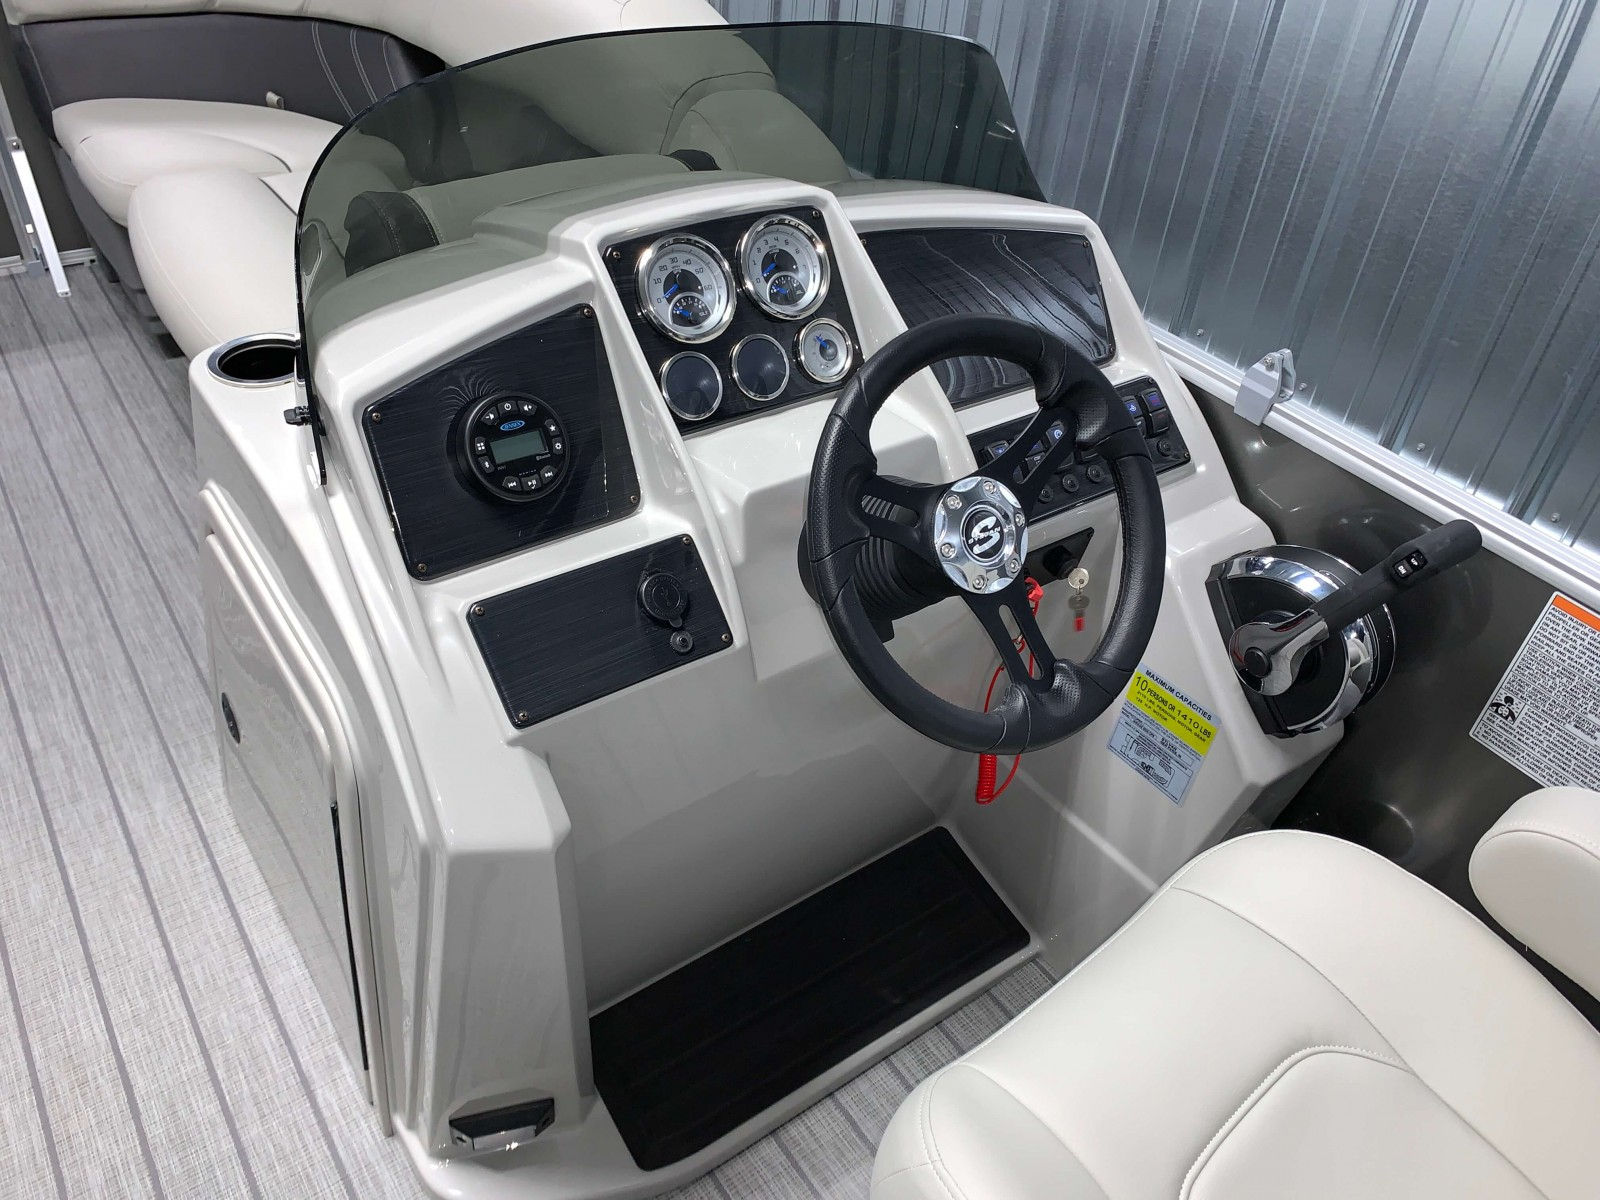 Drivers Console of a 2020 Sylvan Mirage 8520 Cruise Pontoon